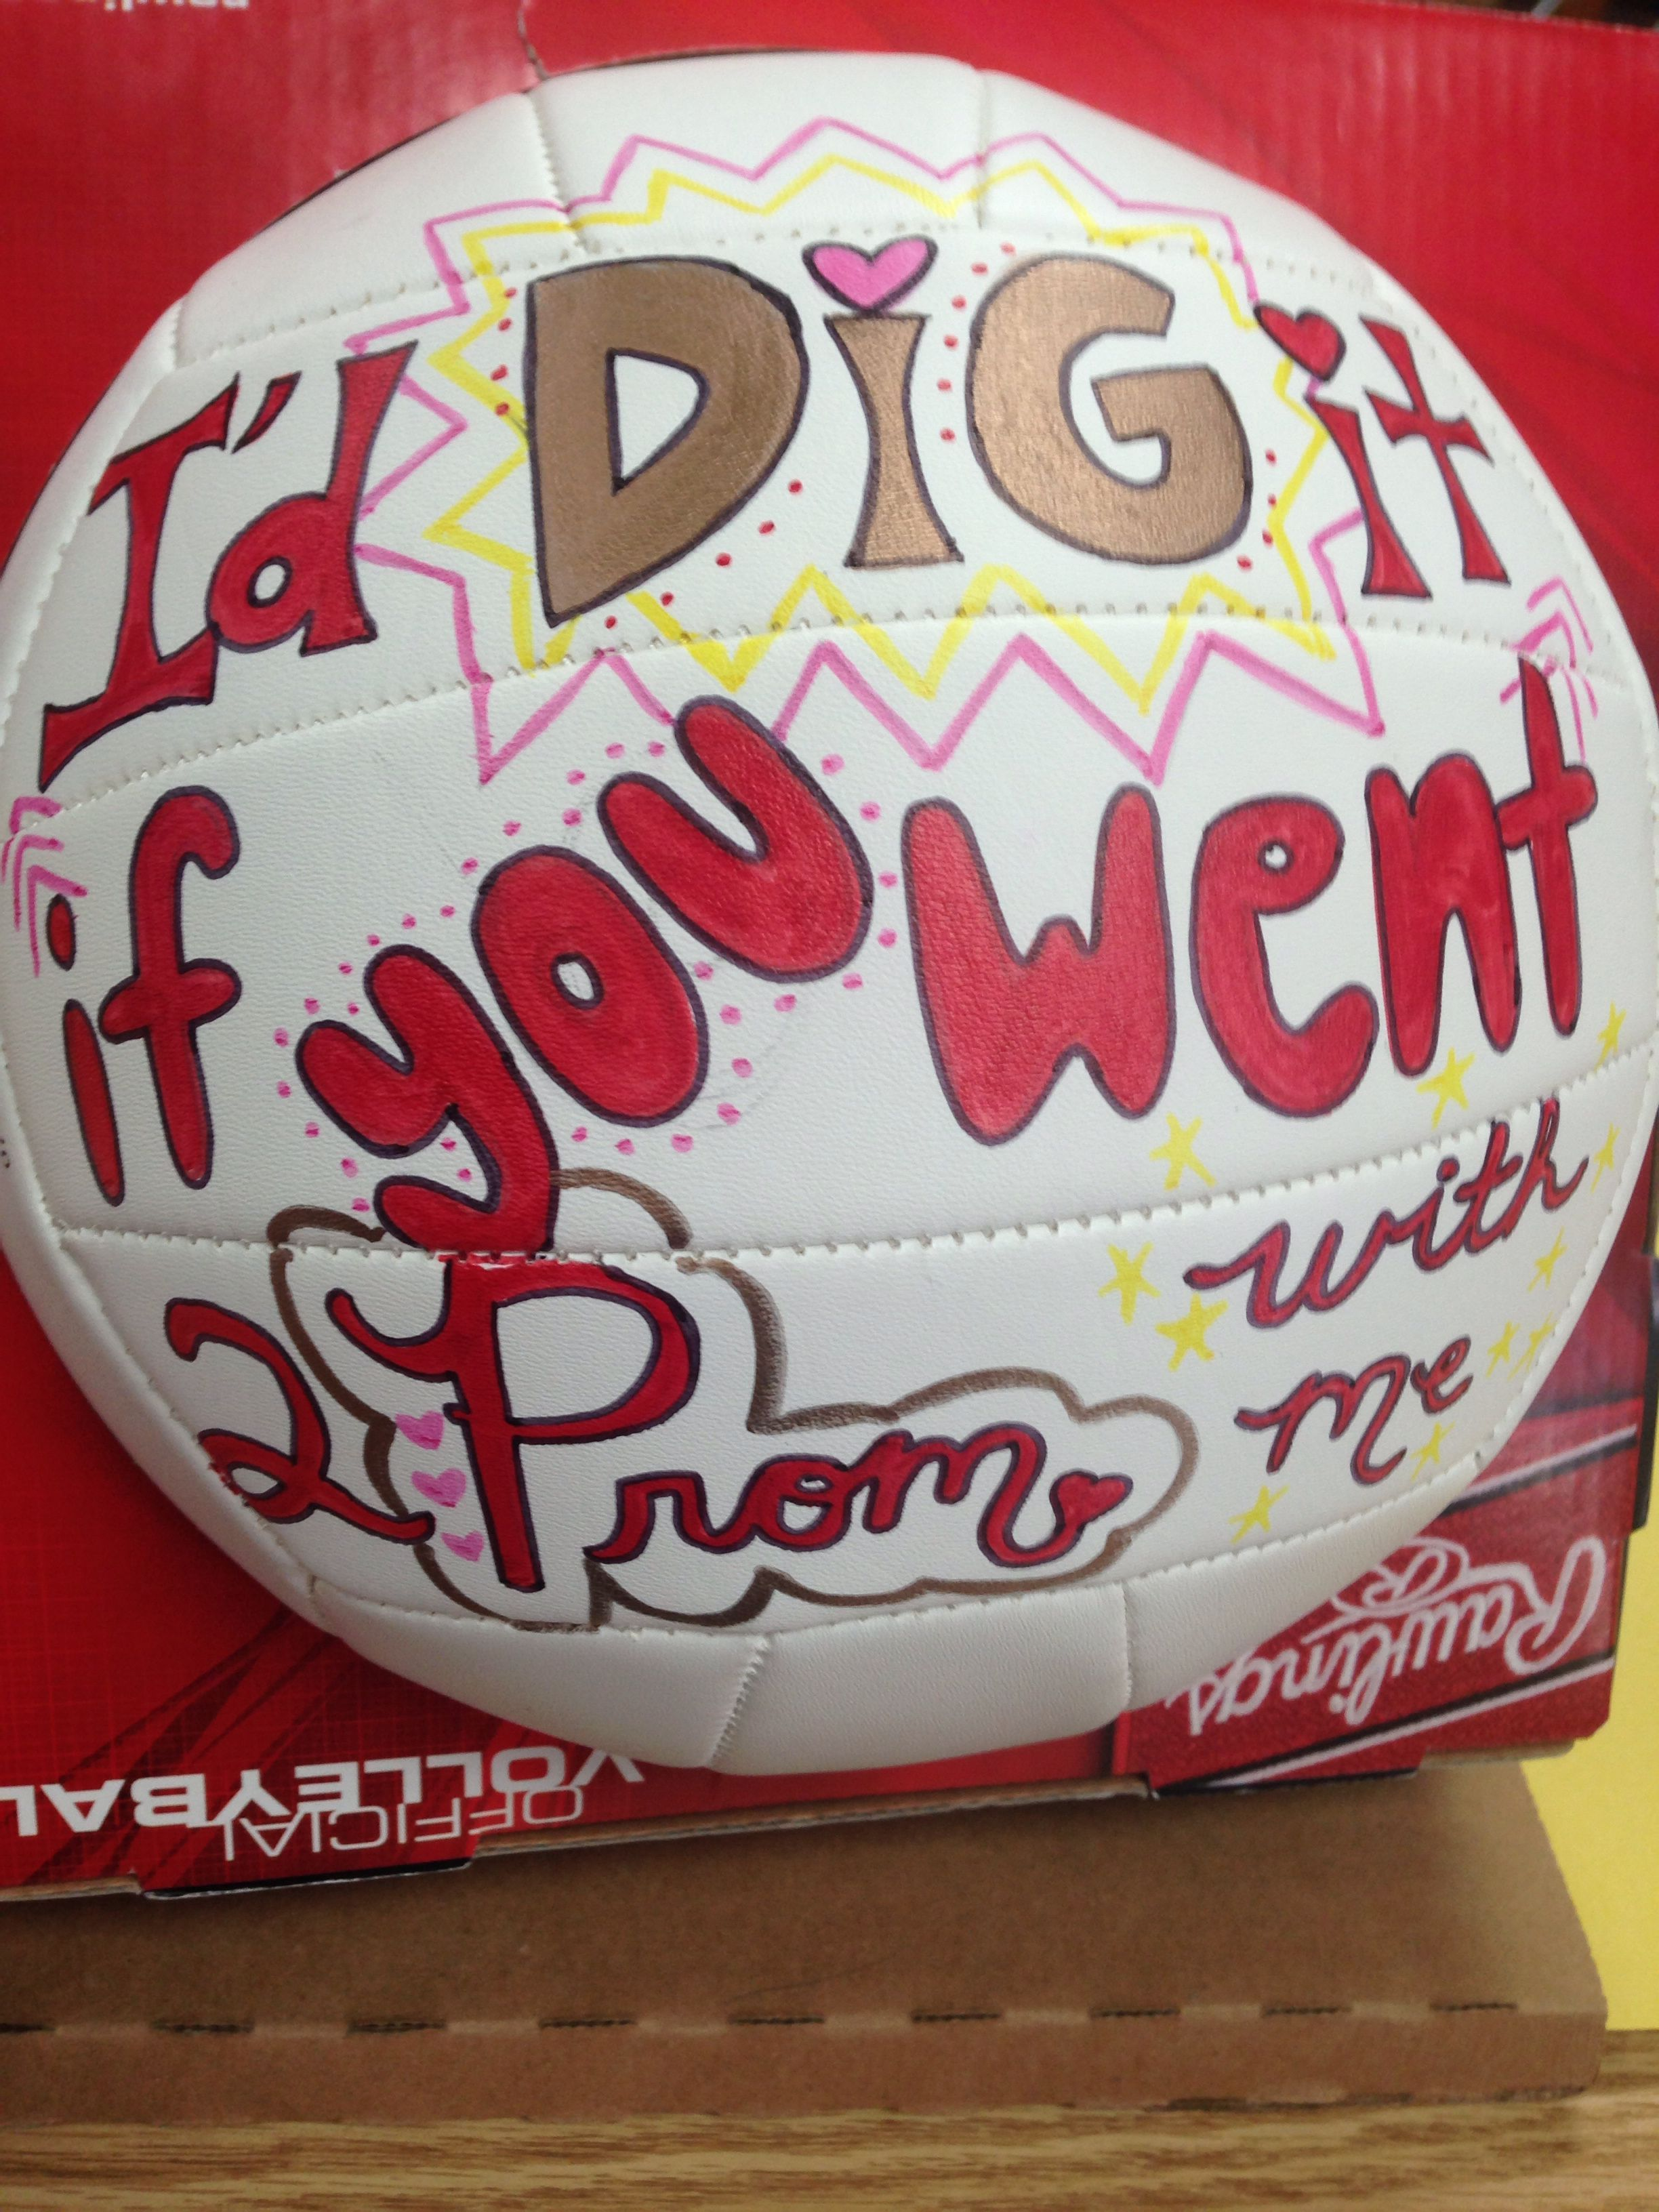 VolleyBall Player Prom Proposal #hocoproposalsideas VolleyBall Player Prom Proposal #hocoproposals